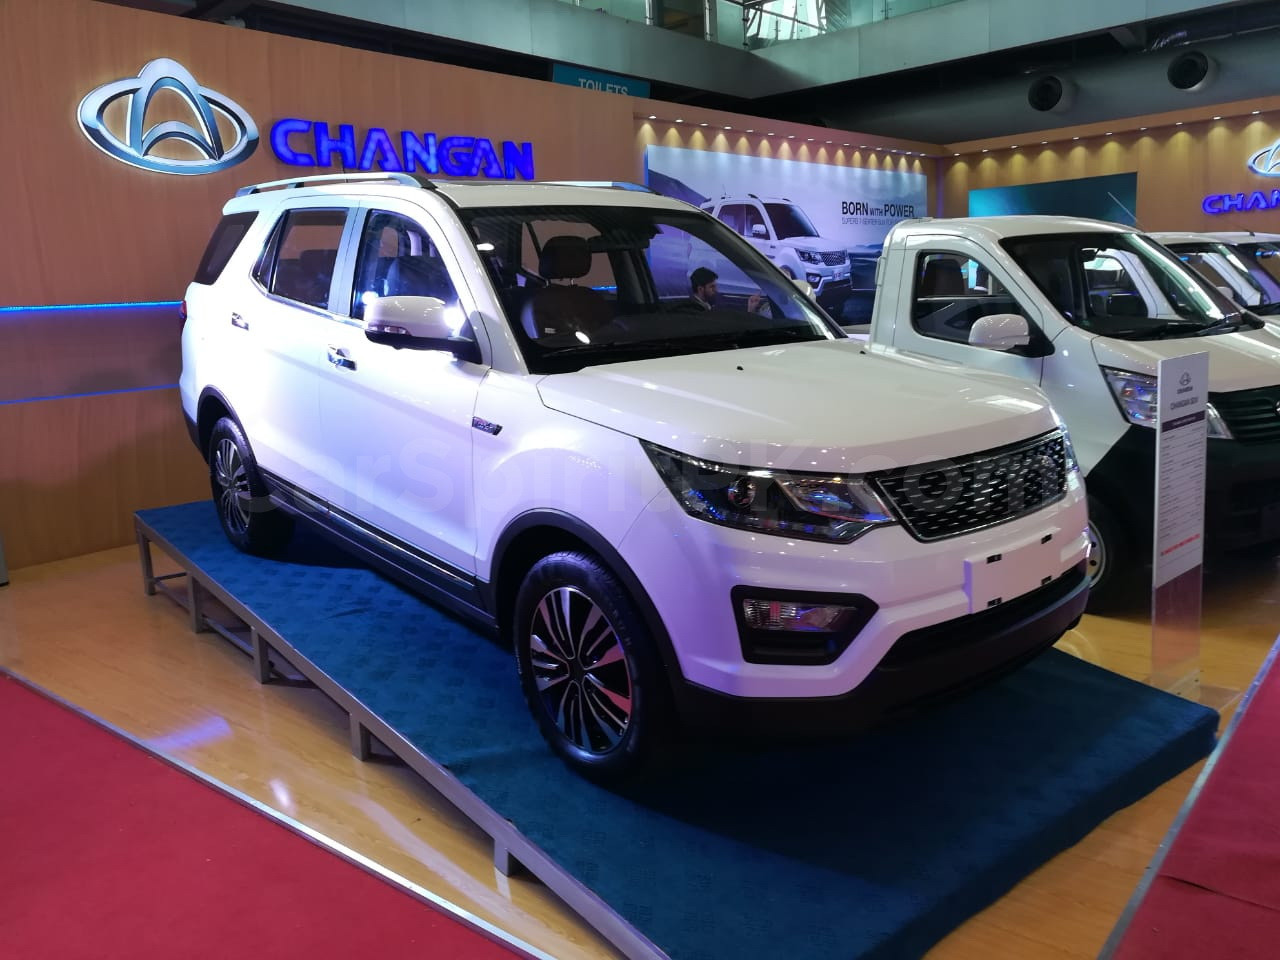 The Changan Eulove X6 7